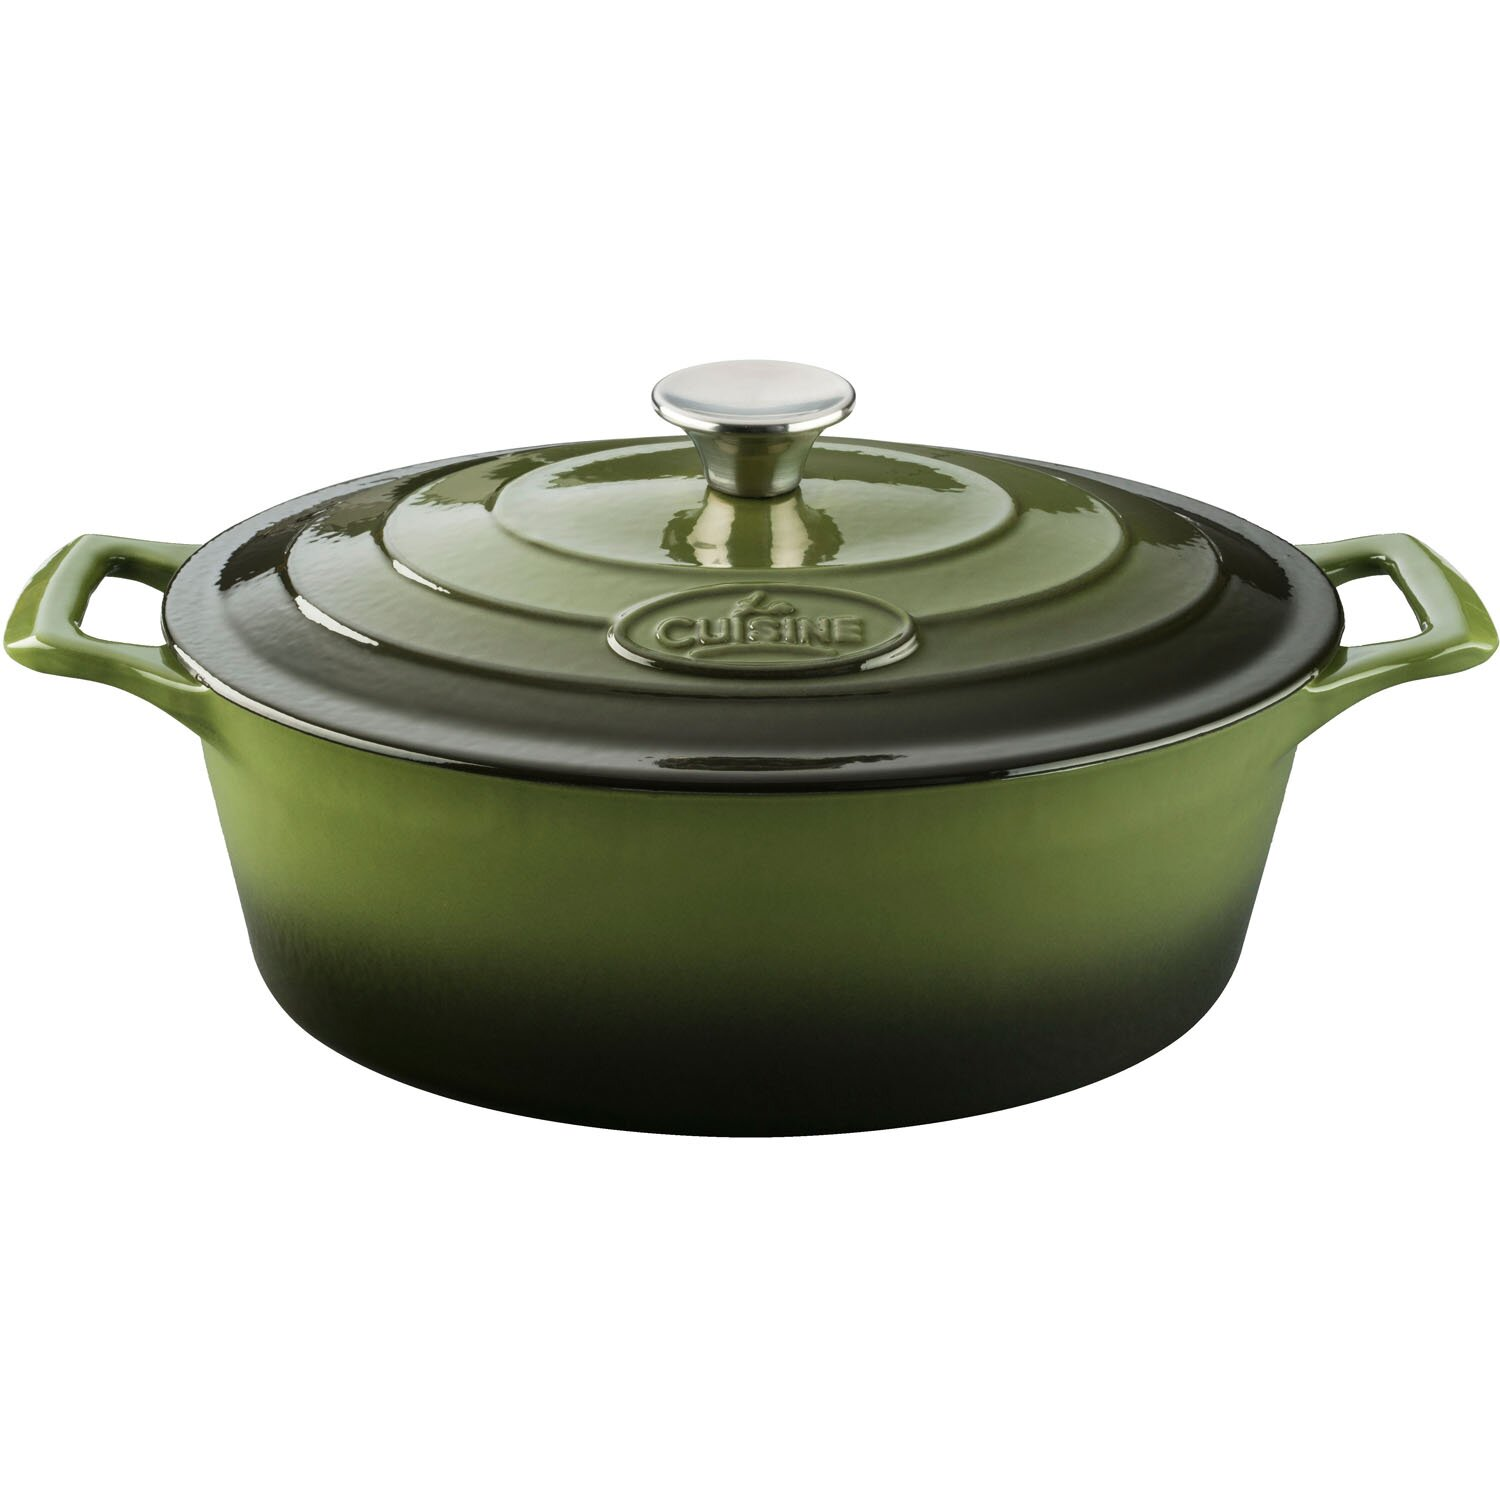 La cuisine oval casserole reviews wayfair for Art and cuisine cookware reviews